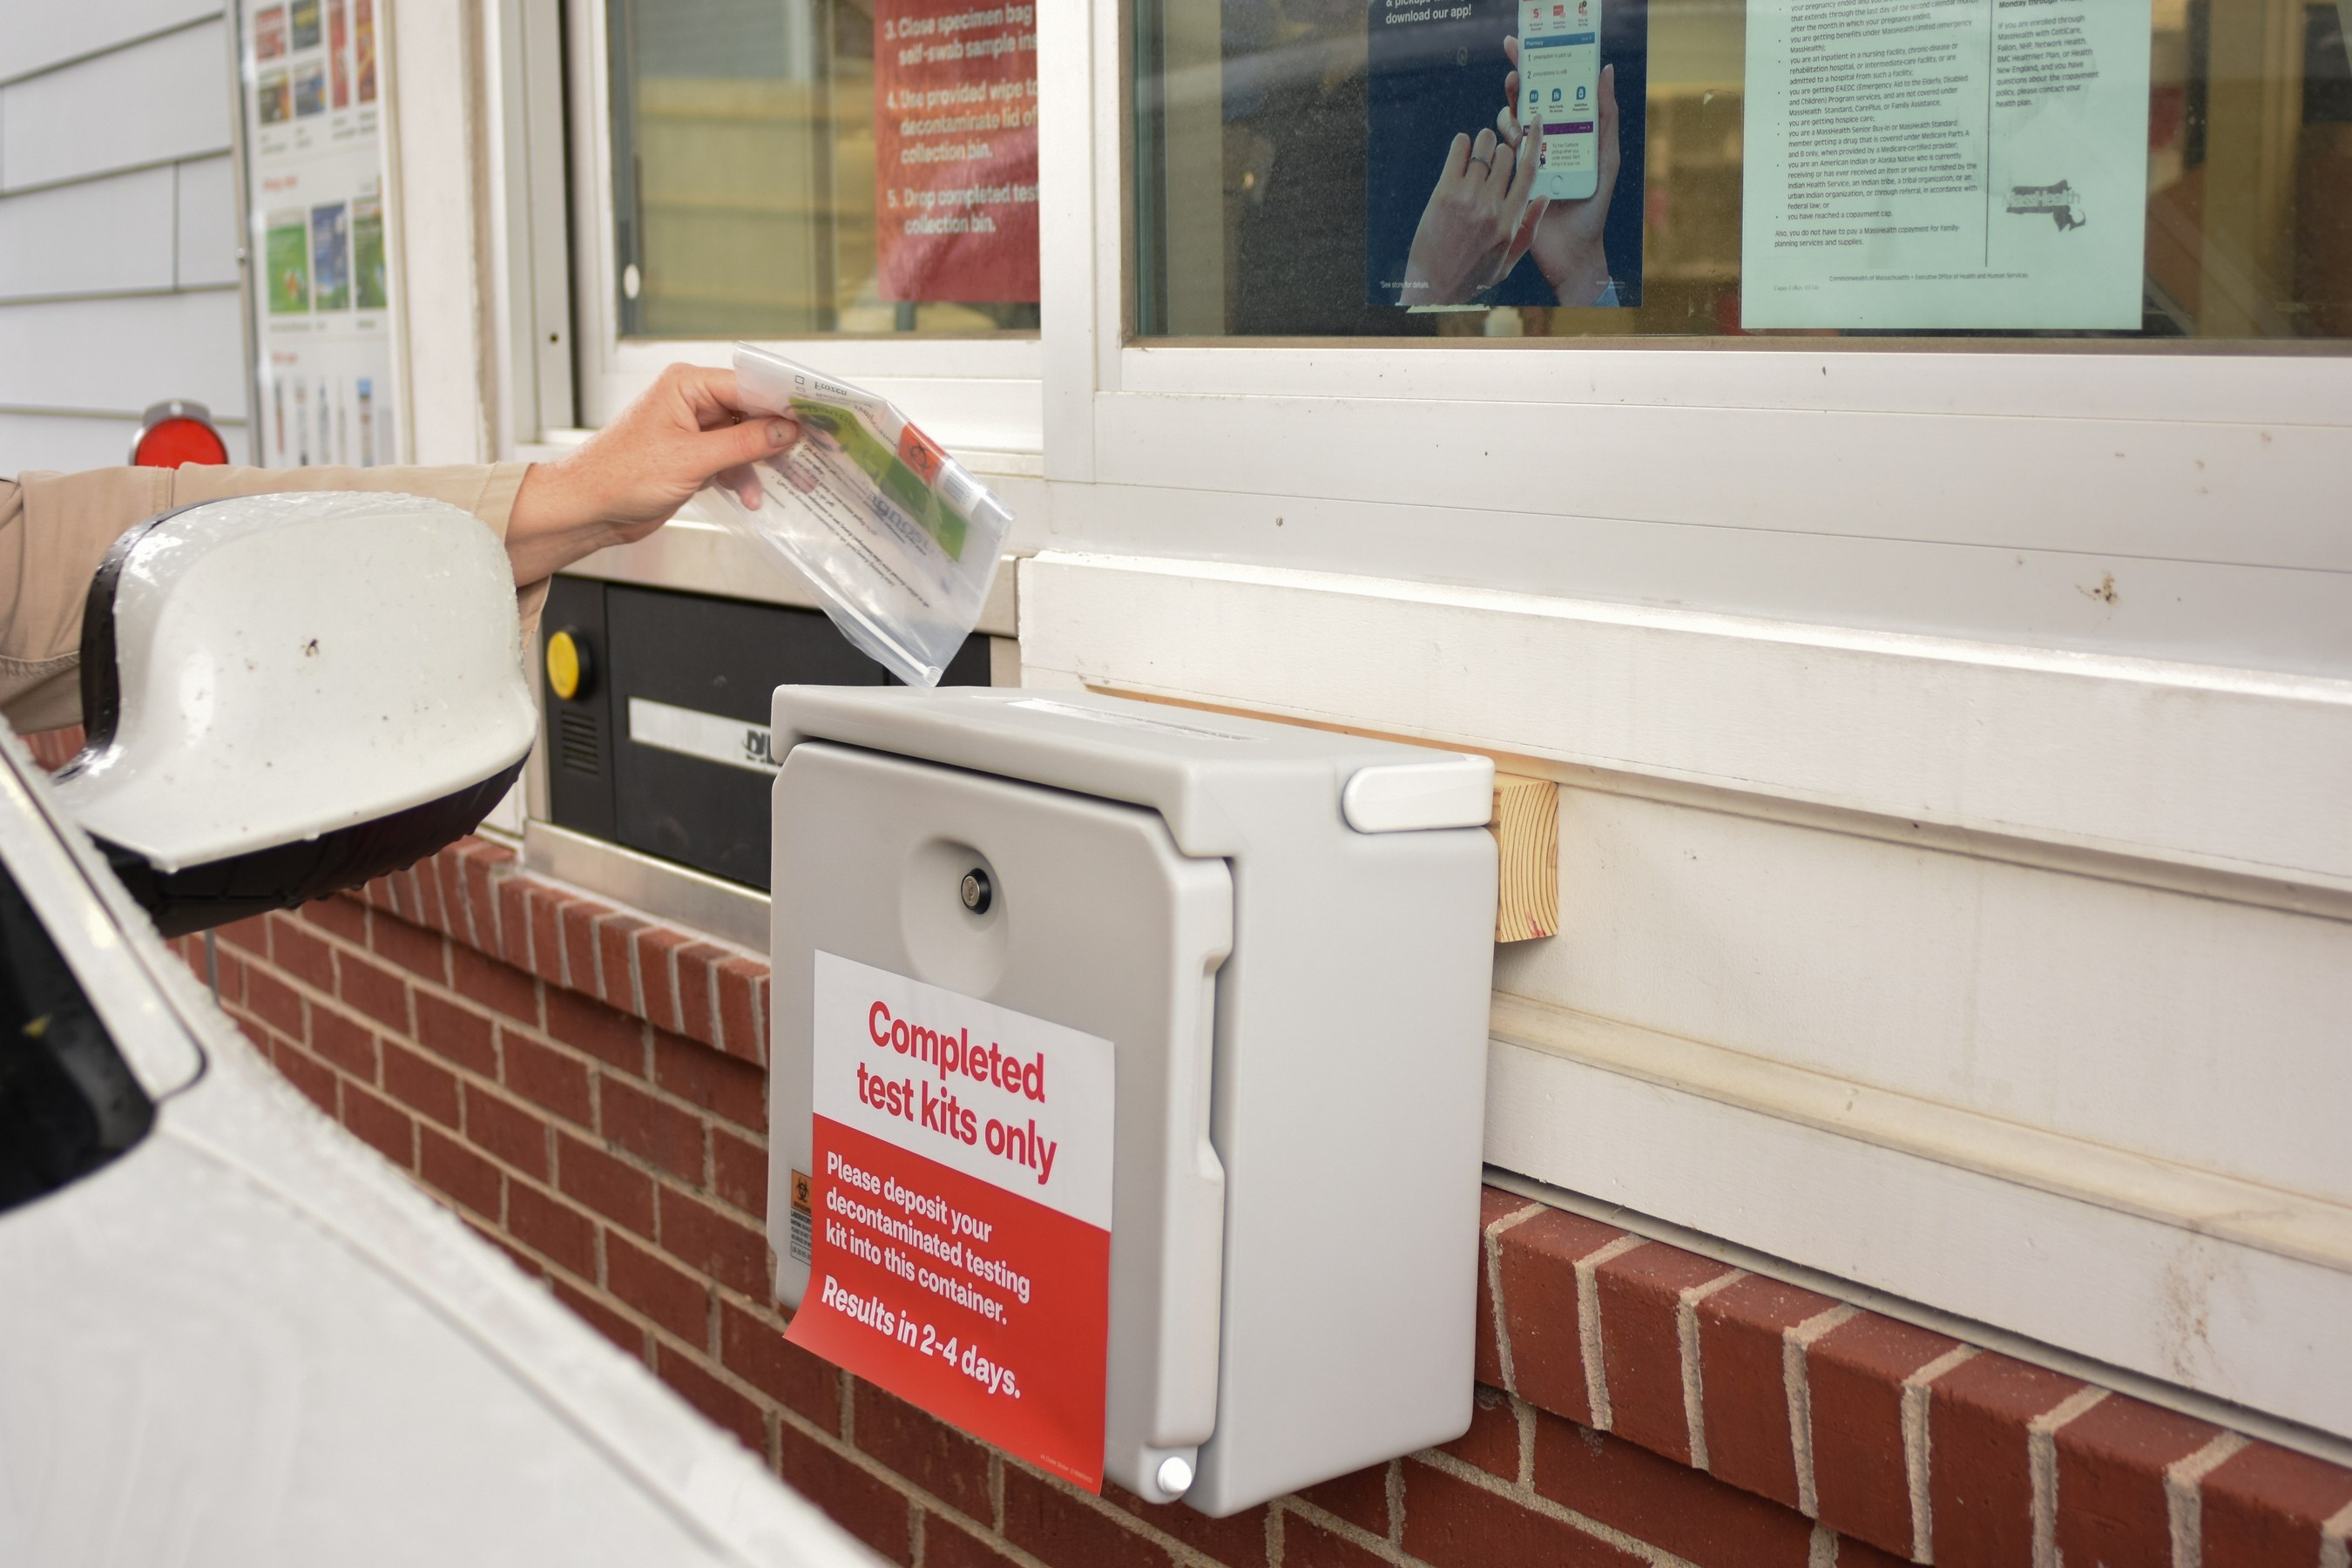 Cvs Health Expands Statewide Covid 19 Response By Opening 27 Additional New Drive Thru Test Sites In Pennsylvania